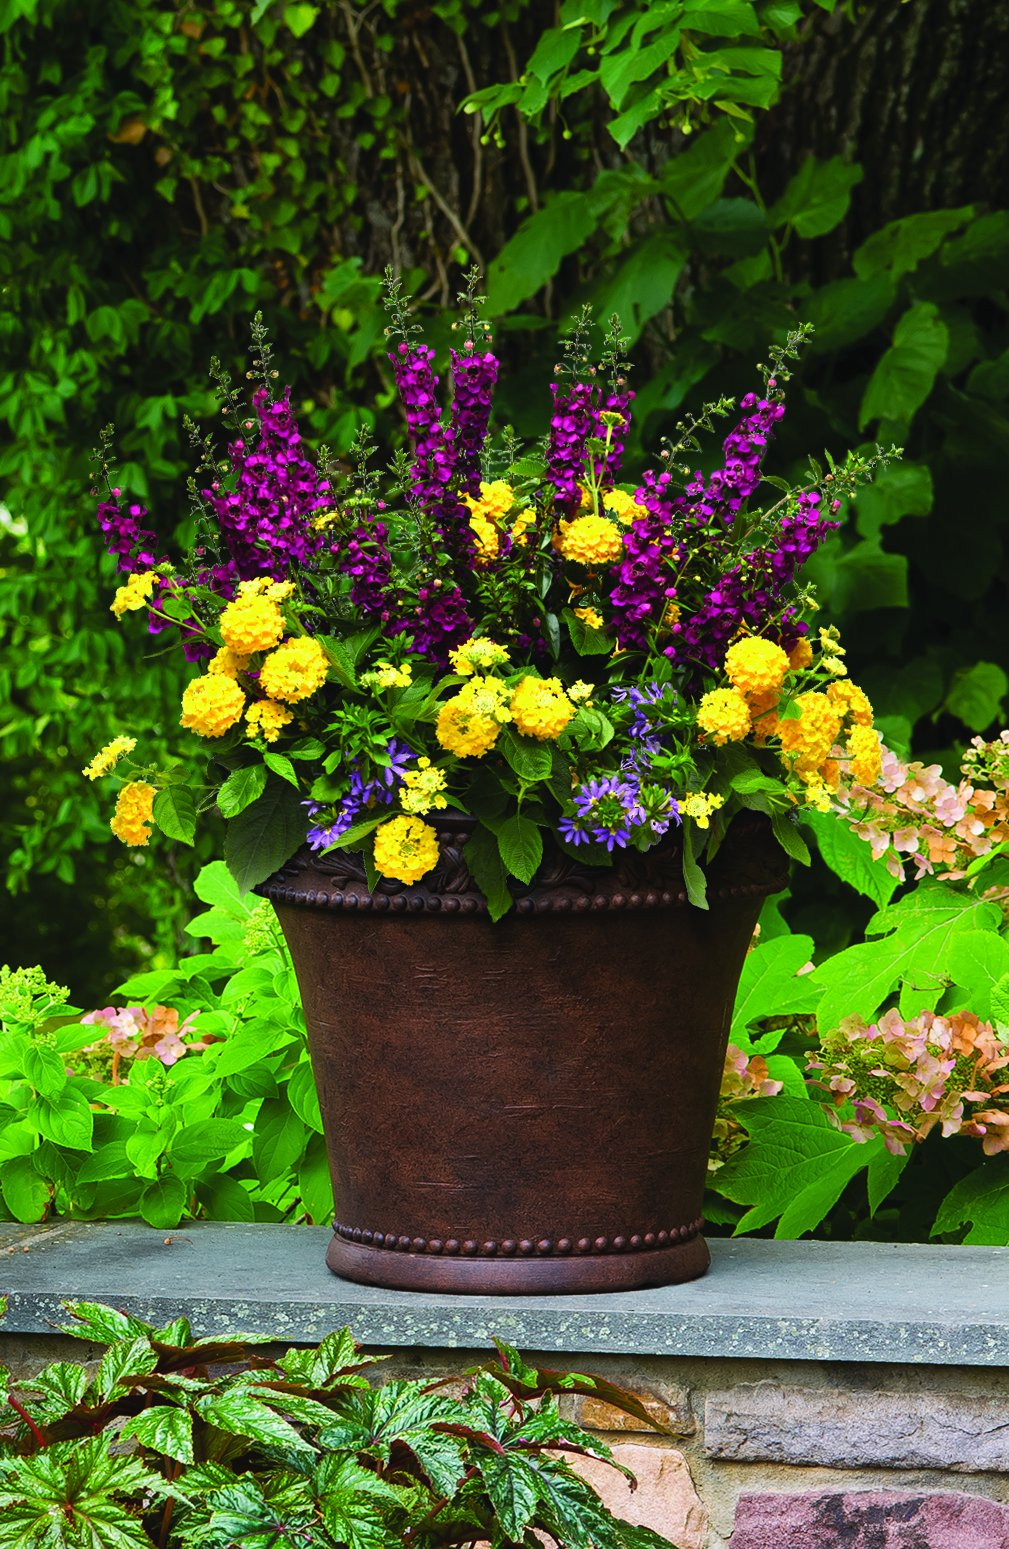 Burpee Combo 'Daydream' - Create Instant Colorful Container Gardens with Four 4 in. pots by Burpee (Image #3)